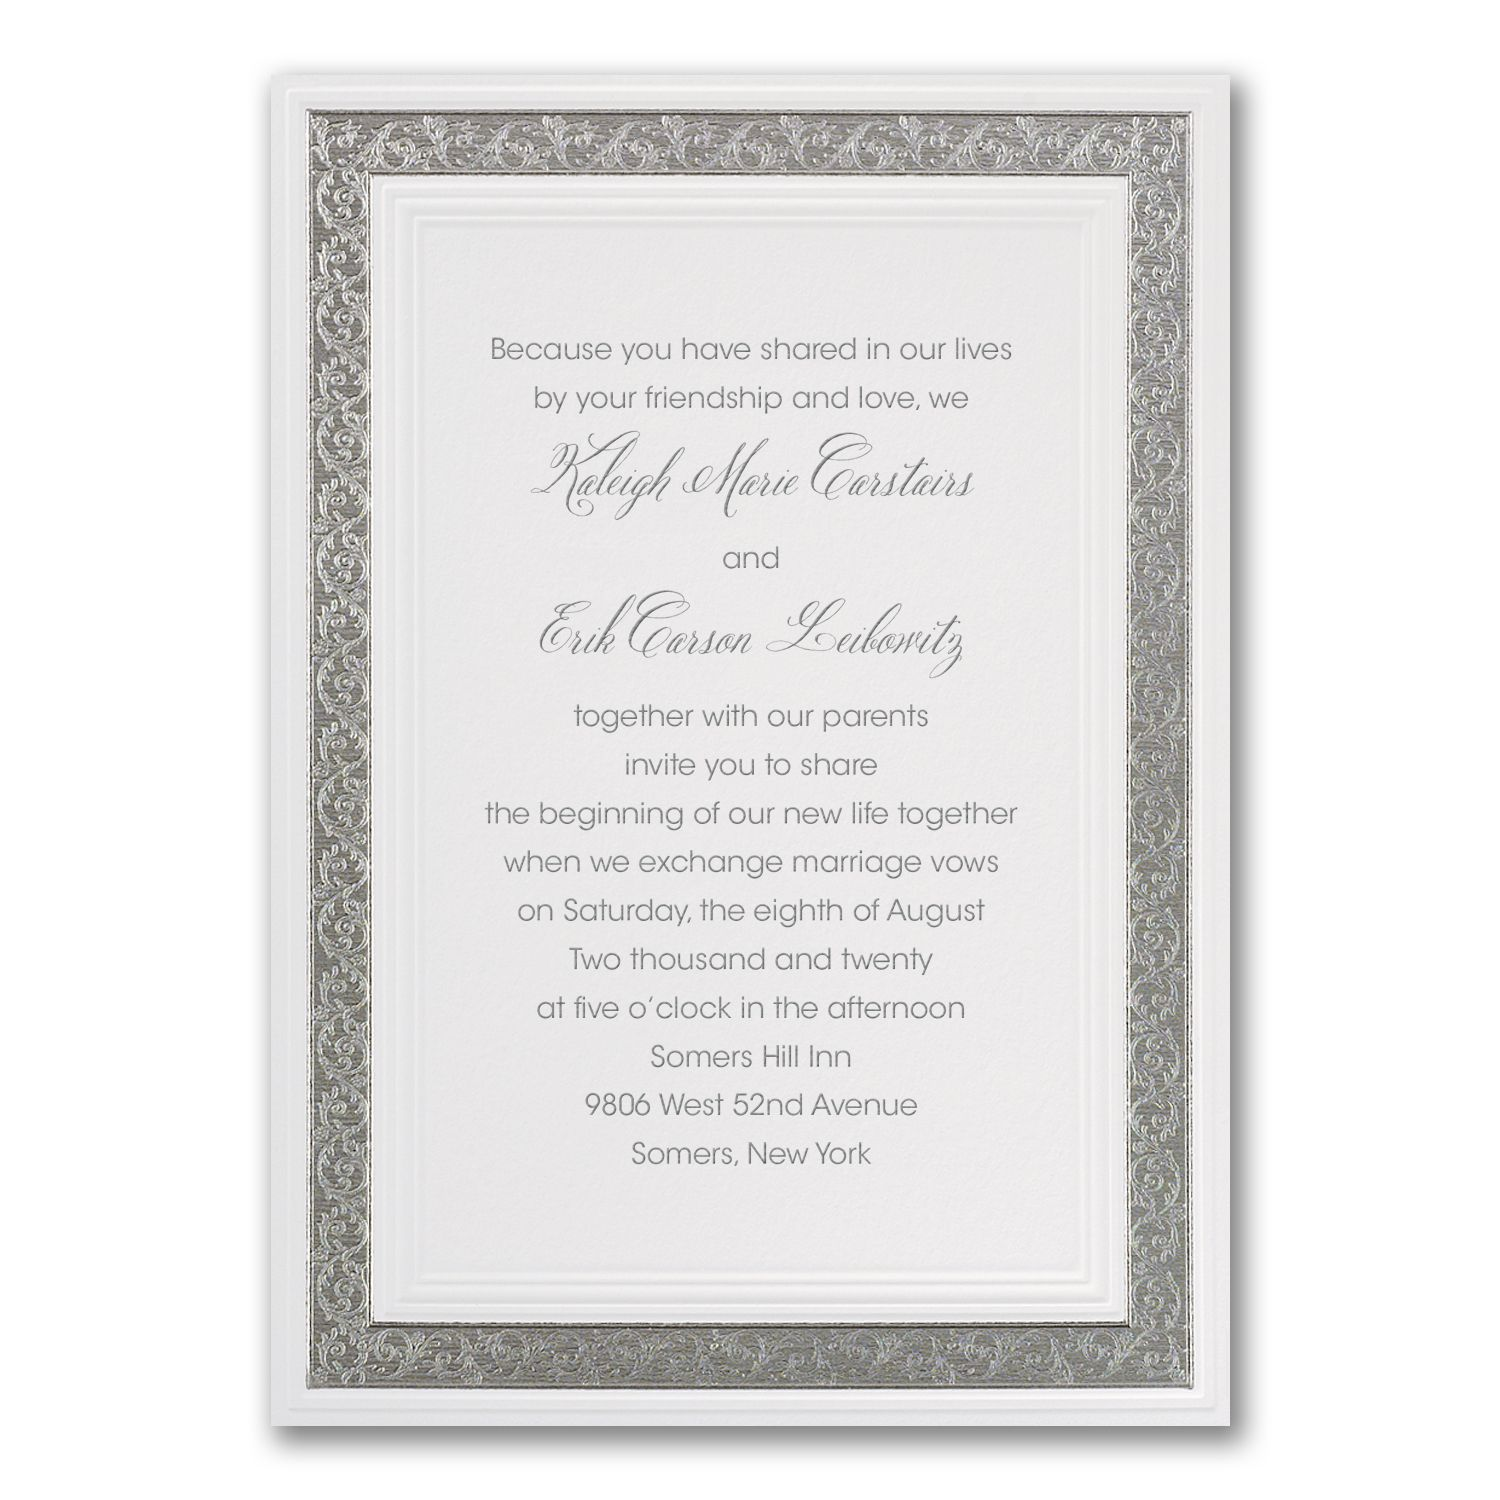 Expensive Wedding Gifts: Discount Wedding Invitations